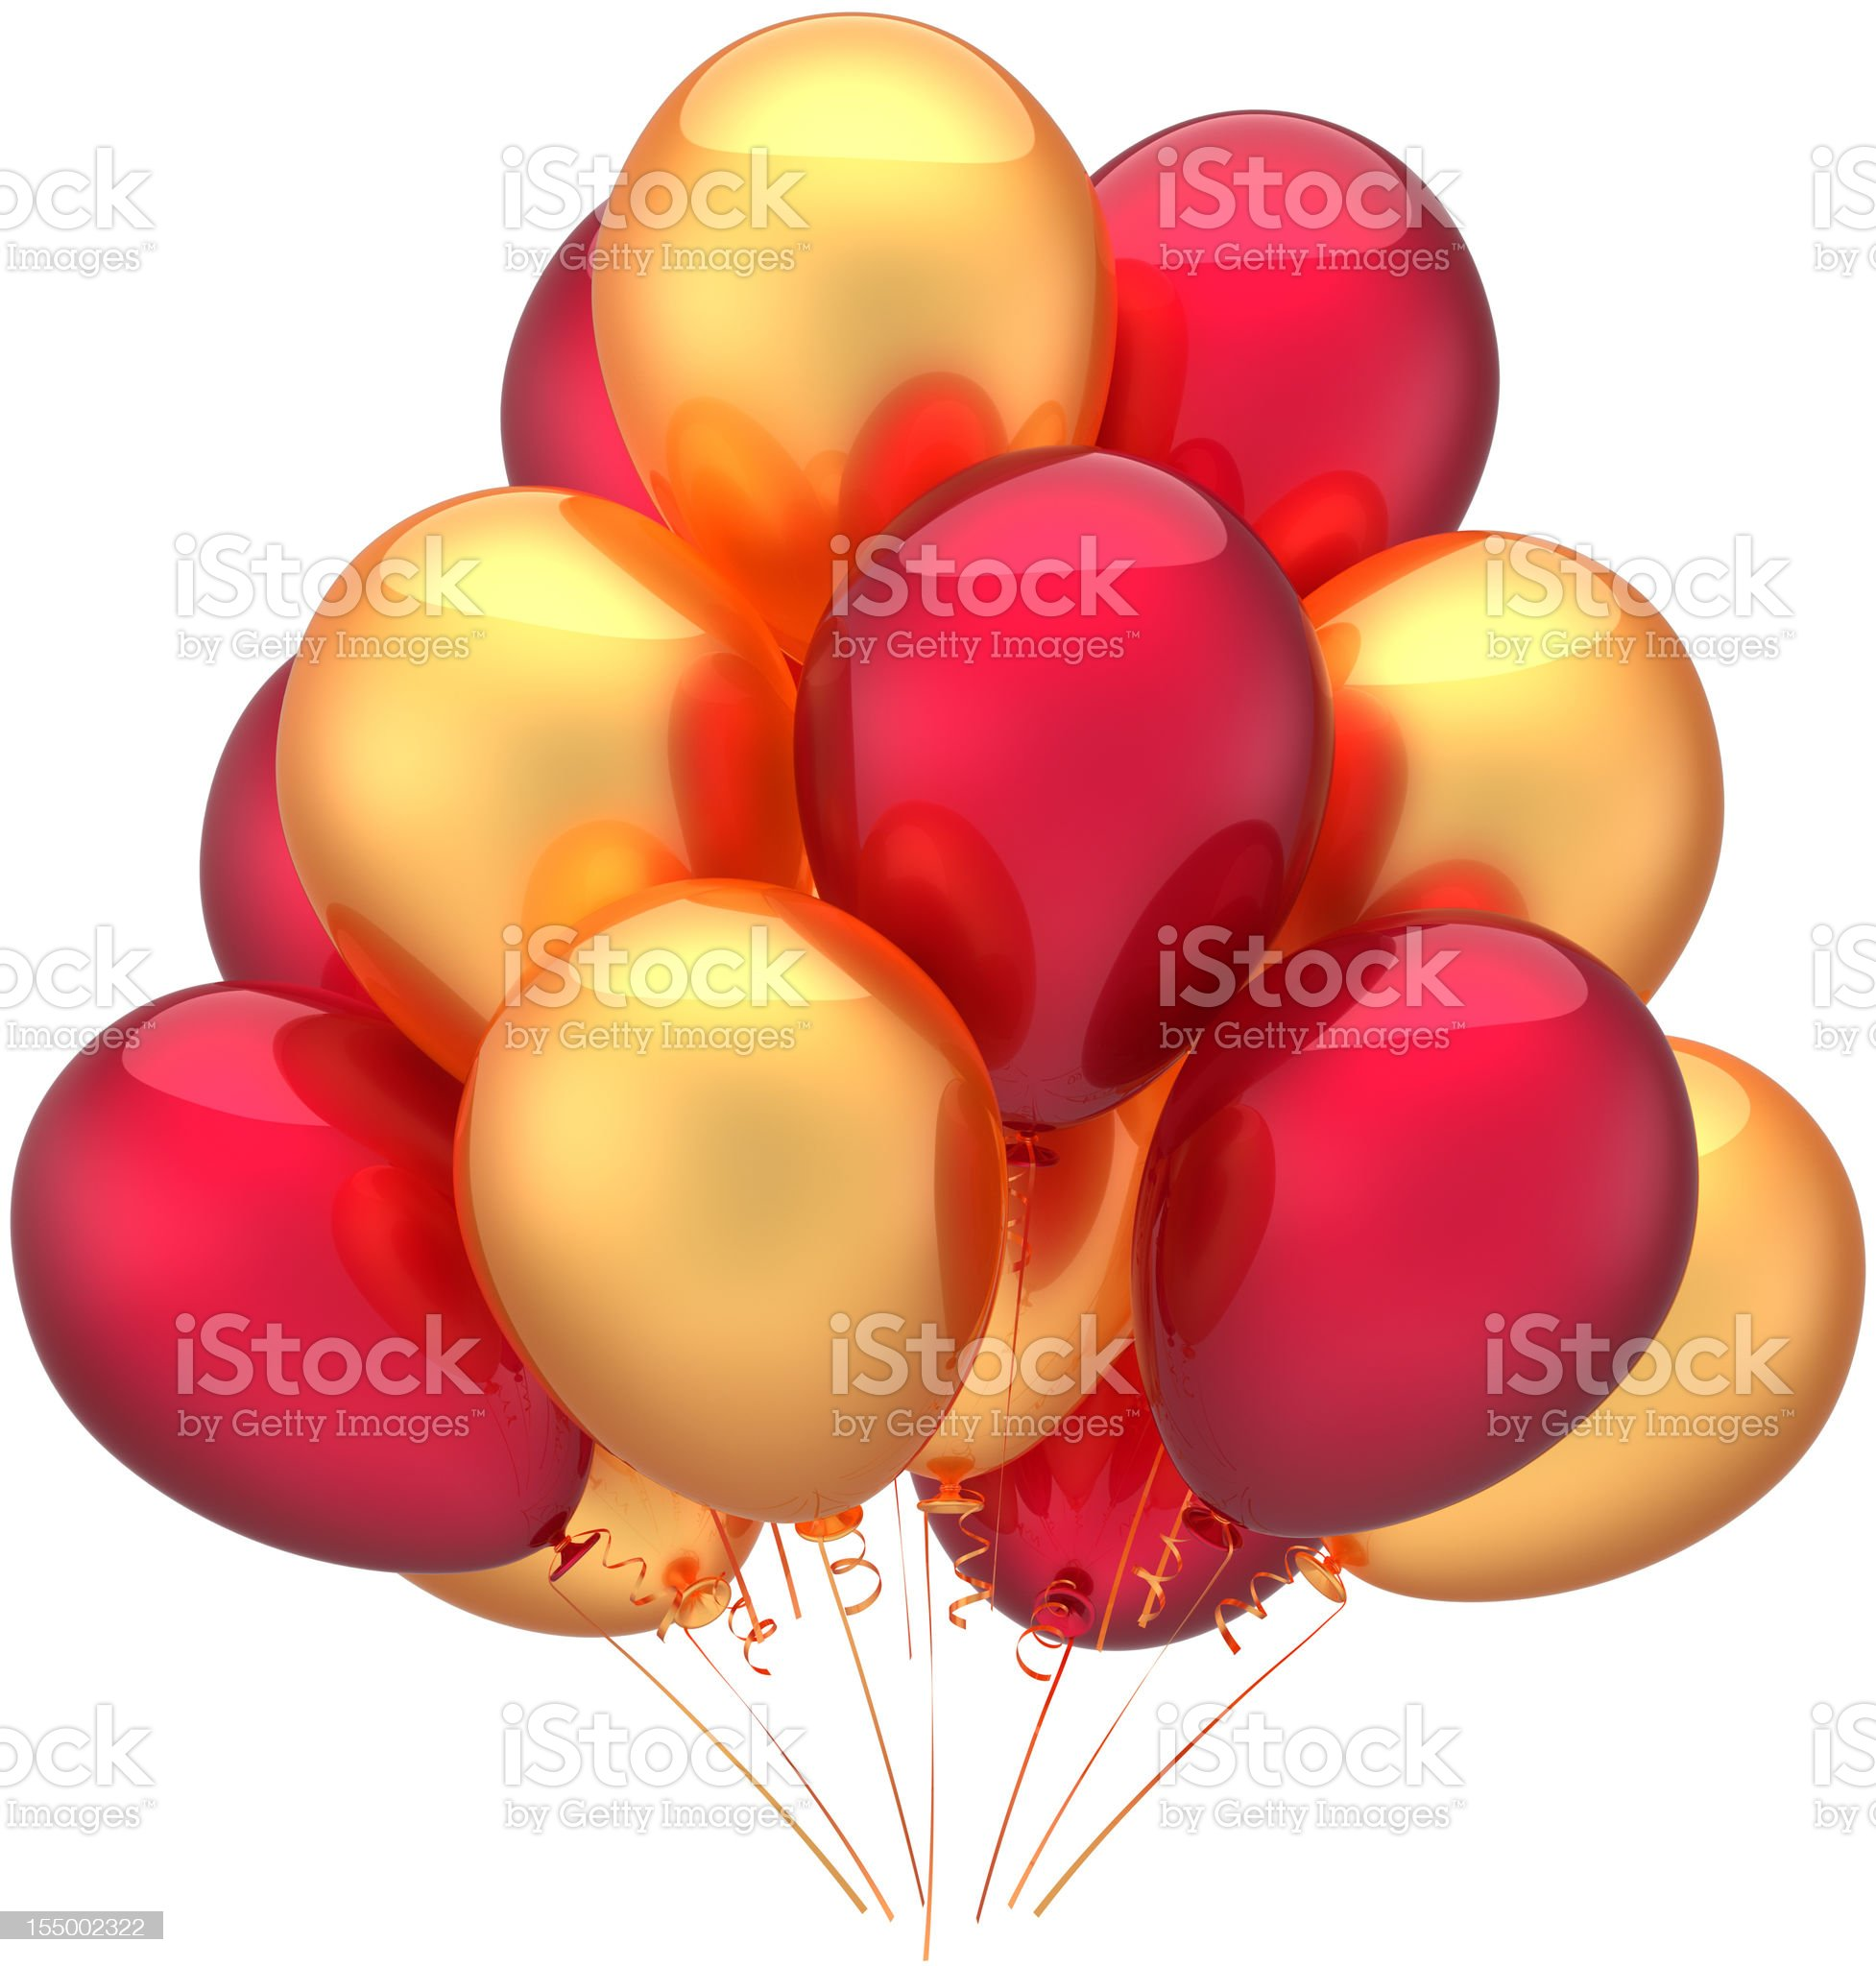 Gold red party balloons beautiful happy birthday decoration royalty-free stock vector art